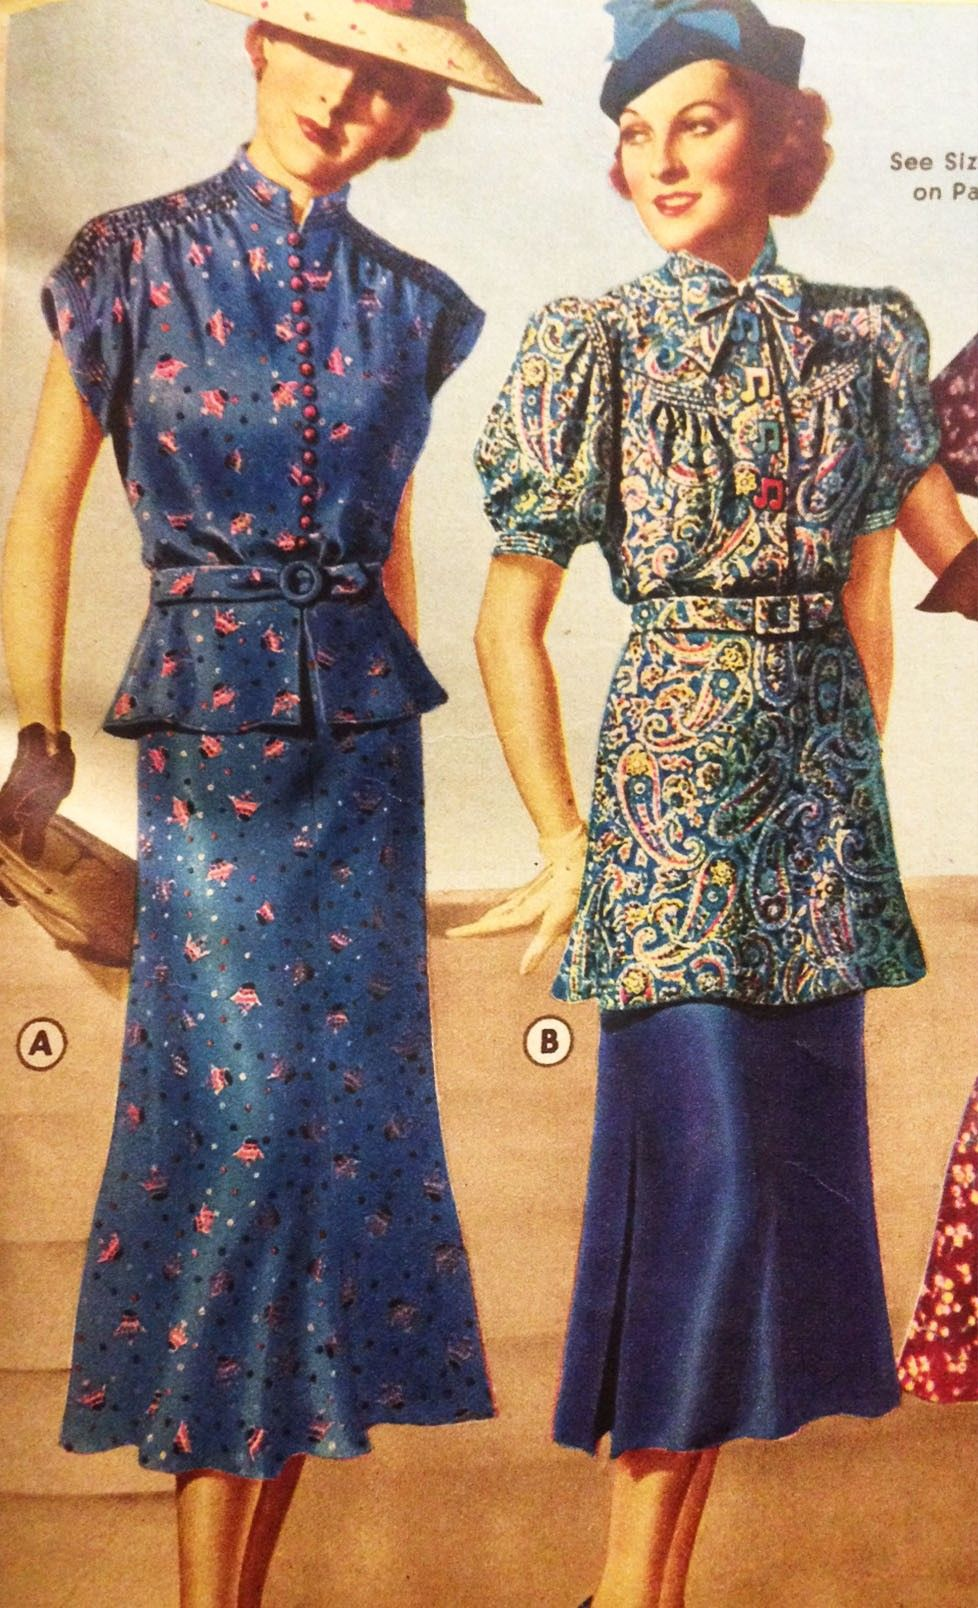 1930s Day Dresses Afternoon Dresses History Vintage 1930s Dress 1930s Fashion Afternoon Dress